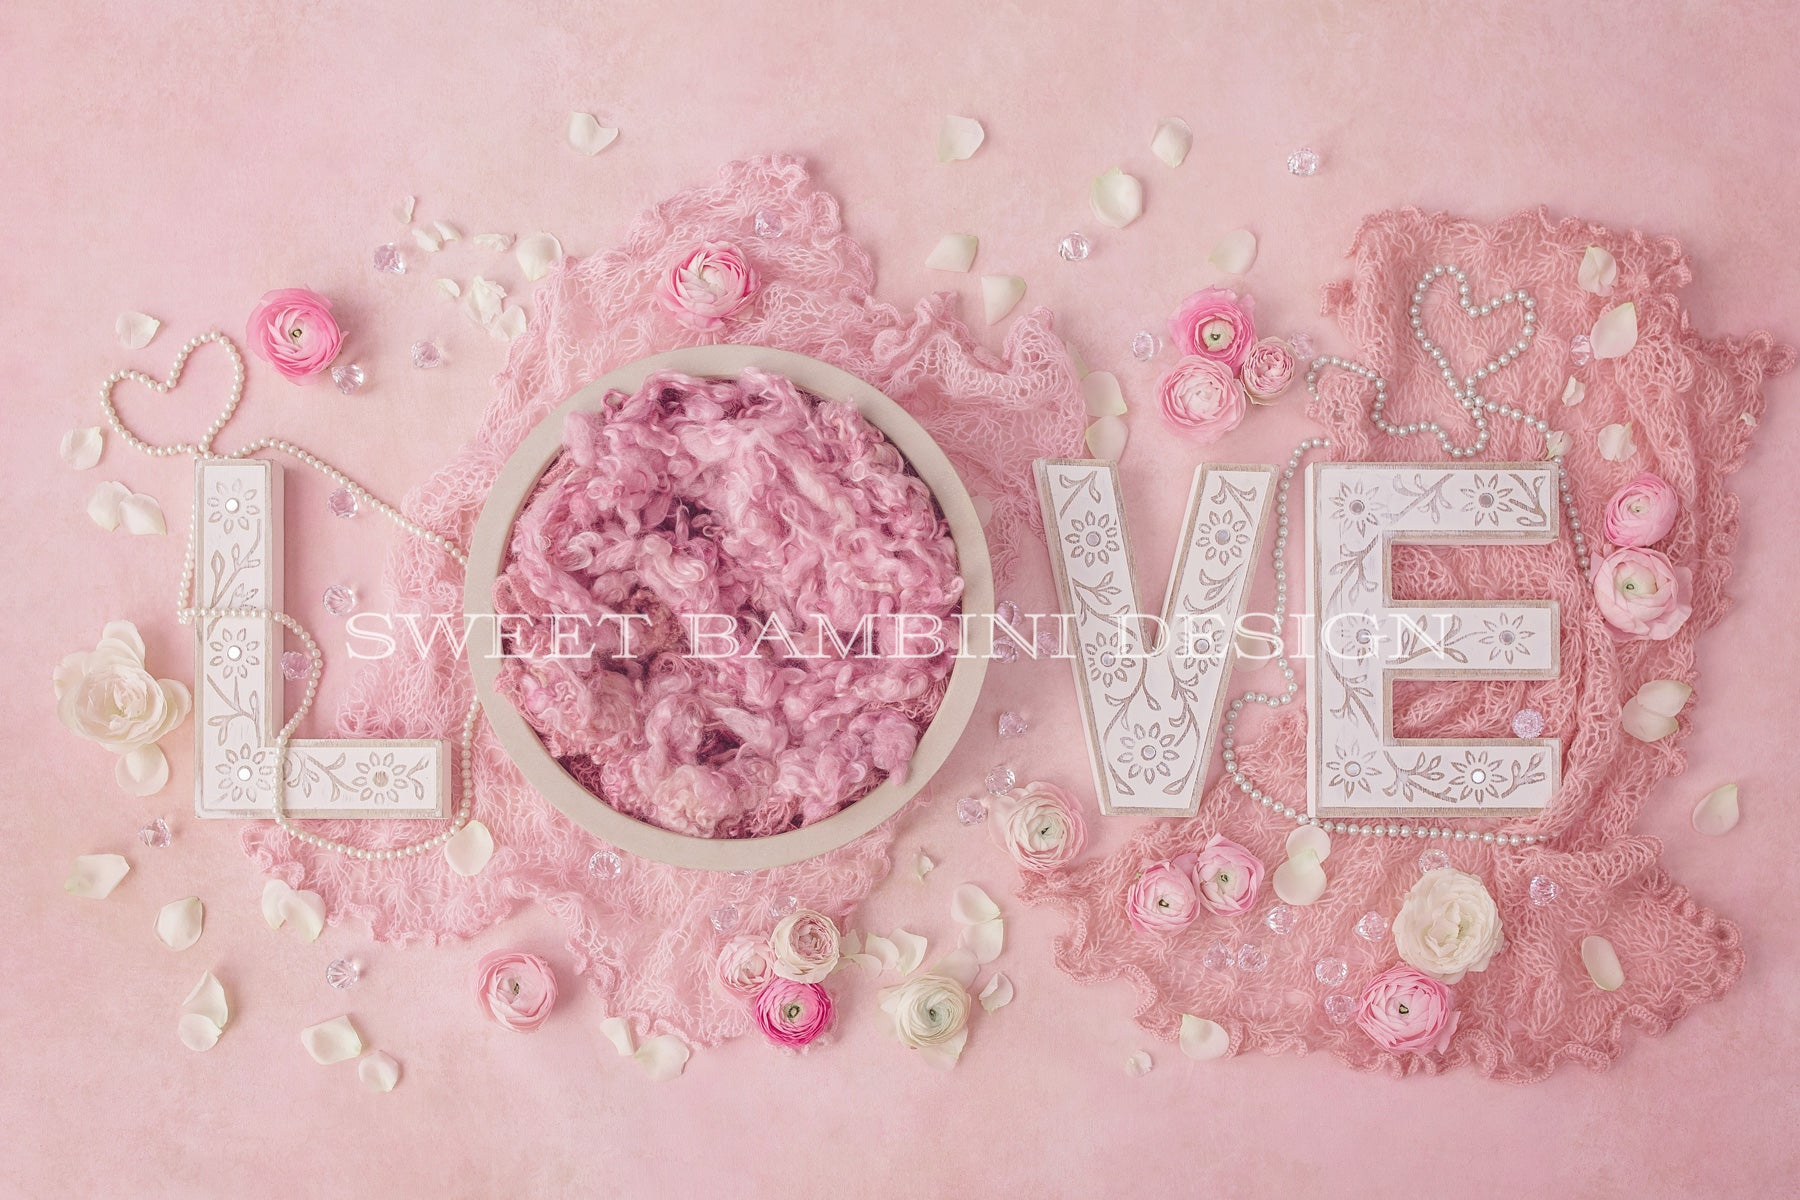 9x16Ft Vinyl Pearls Backdrop for Photography,Classic Rose and Pearls Romantic Dramatic Love Symbols Together Grace Bouquet Artwork Background Newborn Baby Photoshoot Portrait Studio Props Birthday Par